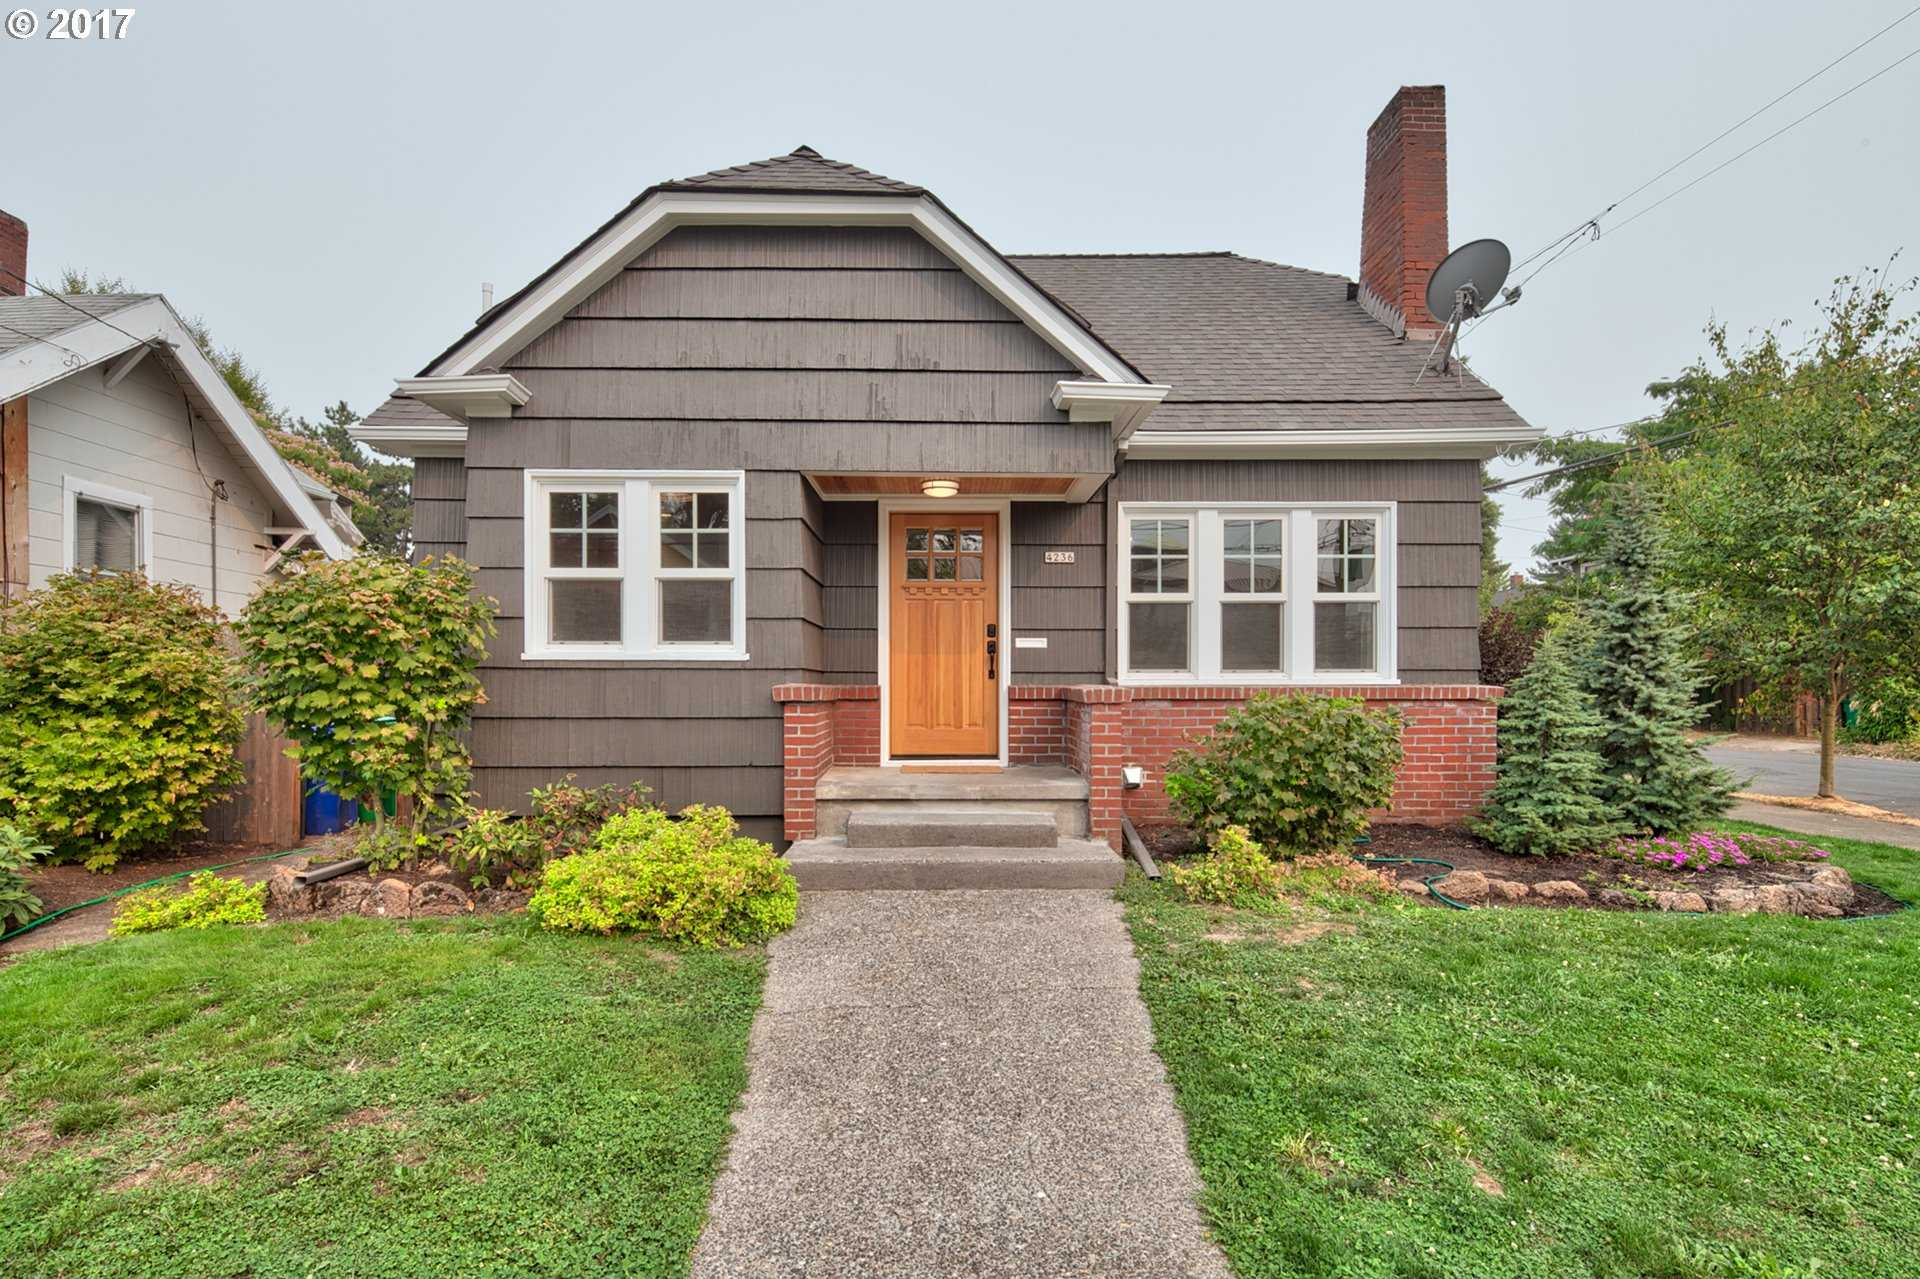 $550,000 - 3Br/3Ba -  for Sale in Creston Kenilworth, Portland